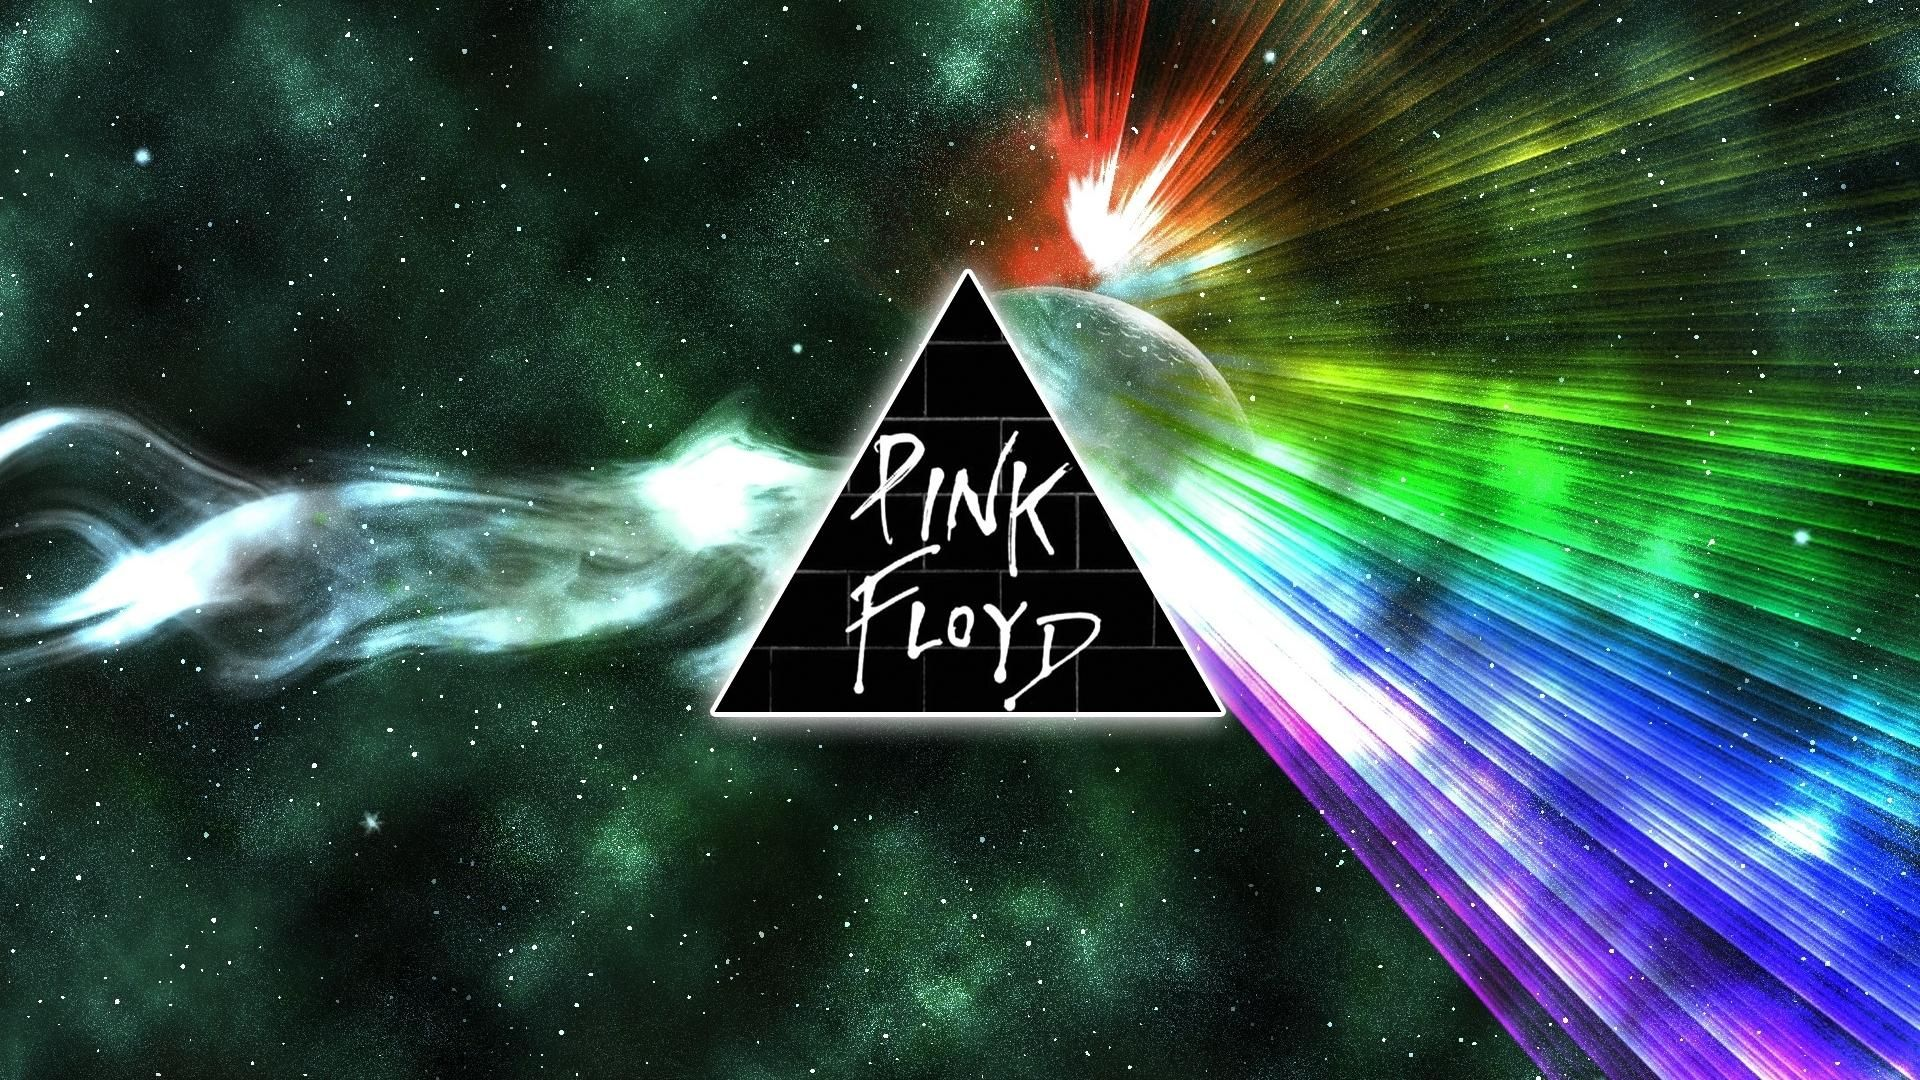 Pink Floyd HD Wallpaper Picture Image 1920x1080